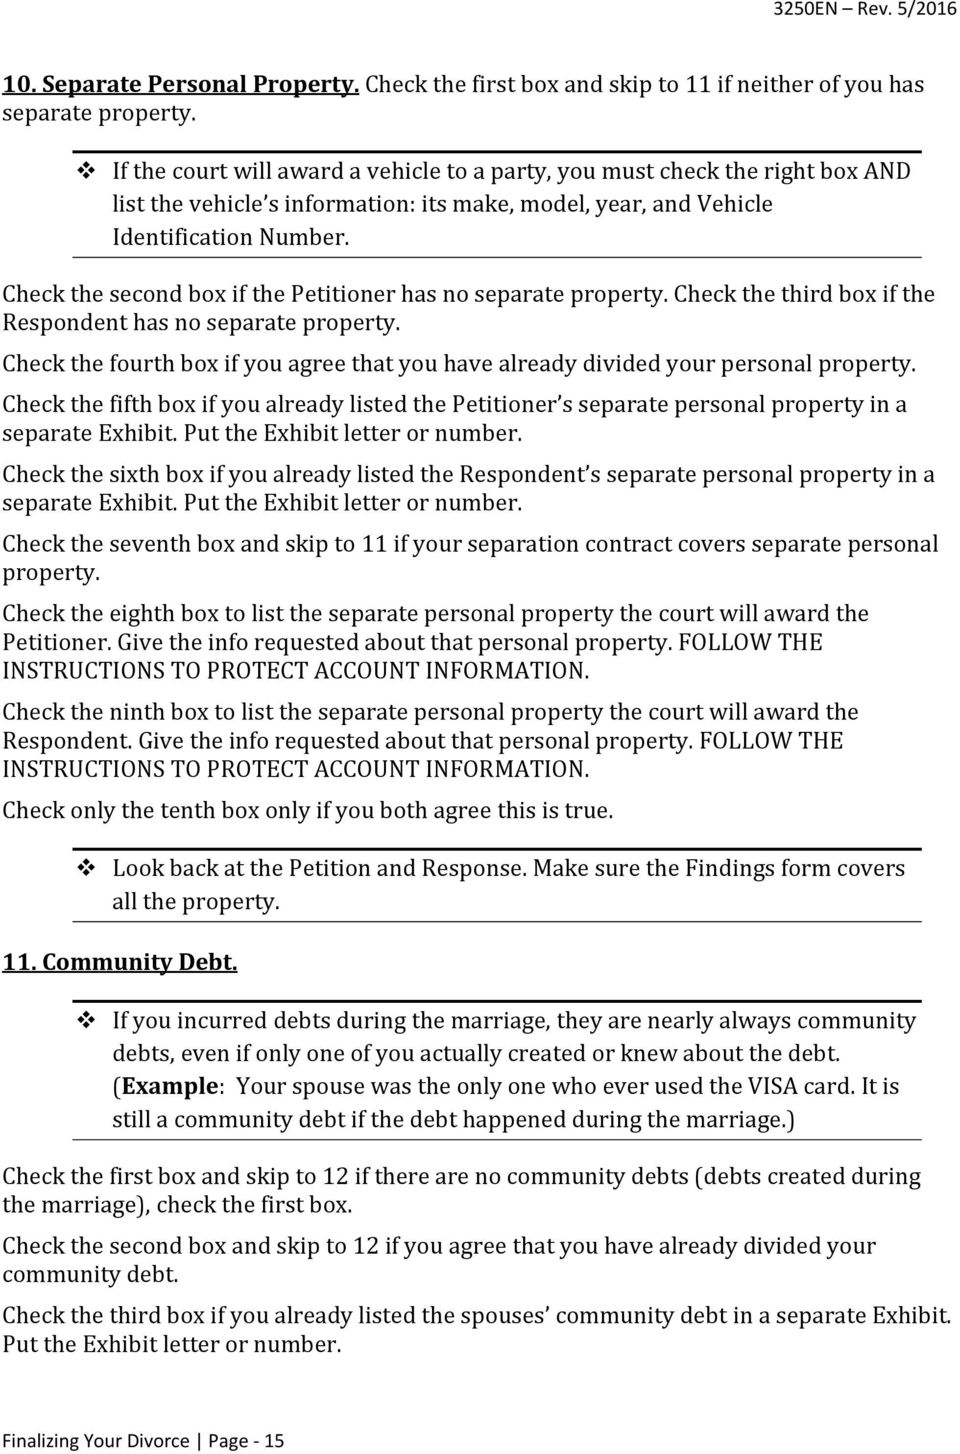 Check the second box if the Petitioner has no separate property. Check the third box if the Respondent has no separate property.